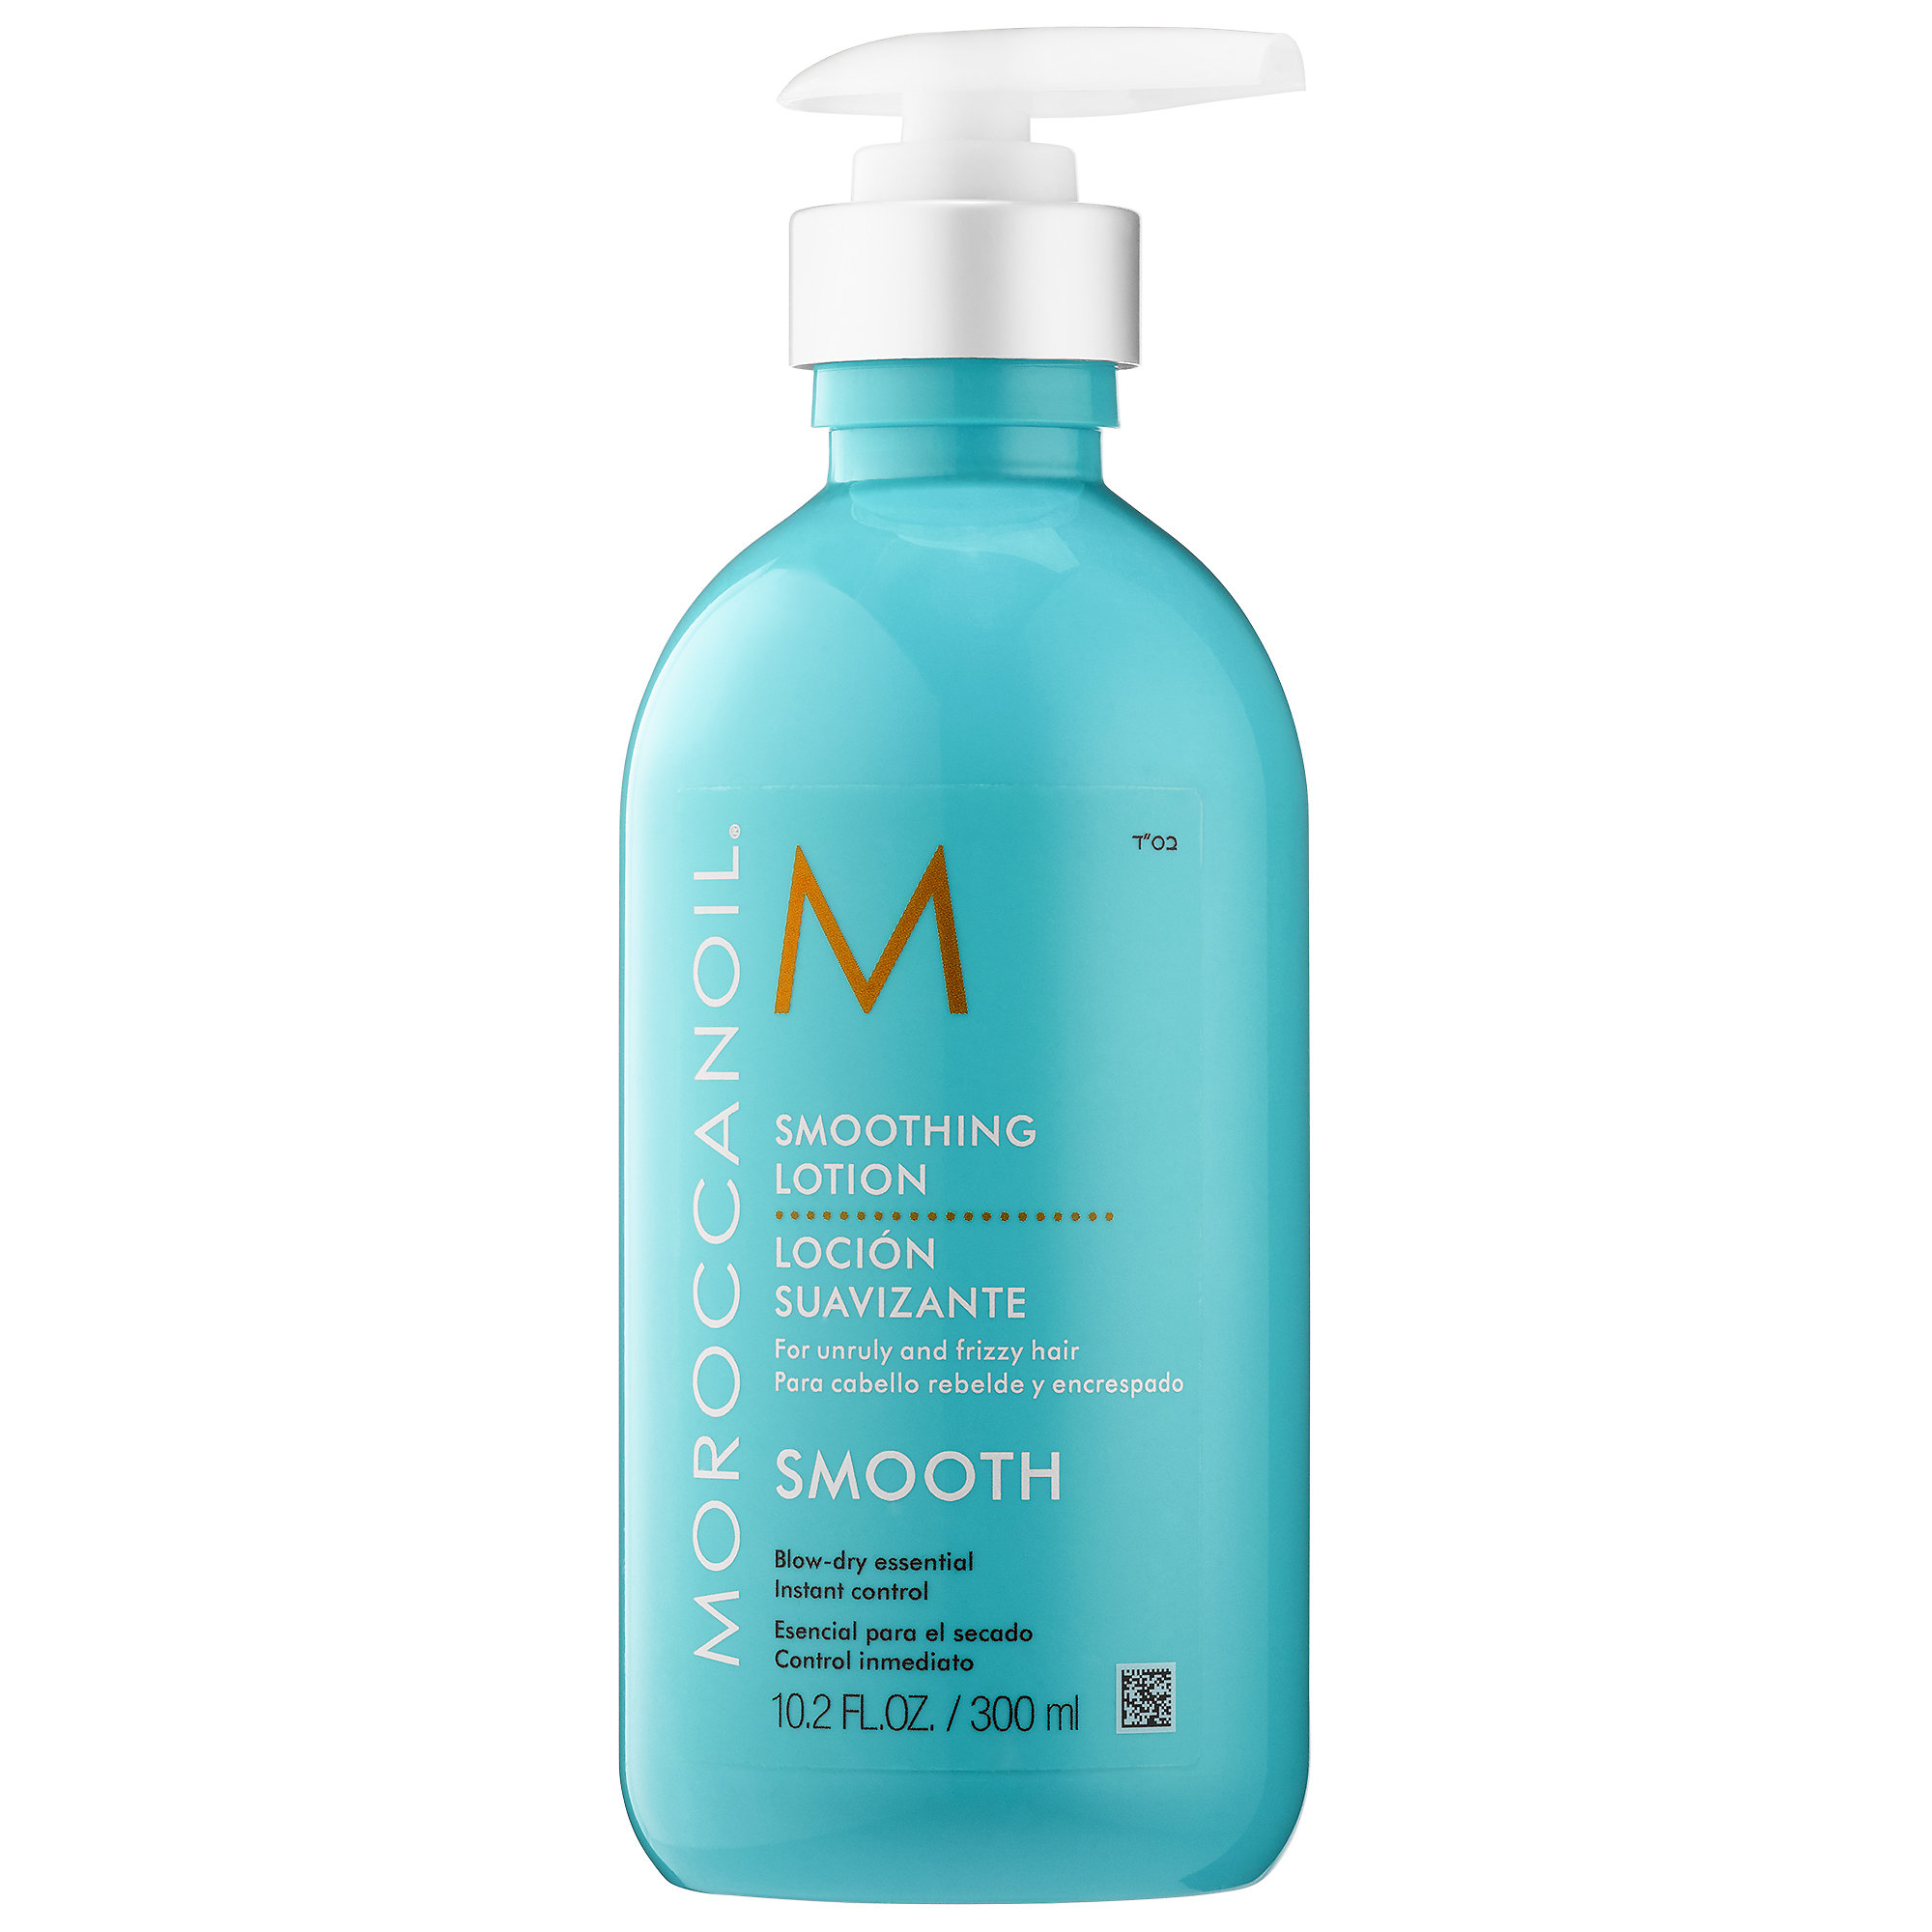 Moroccan Oil Smoothing Lotion - An all-in-one blow dry lotion that leaves hair soft and smooth, while taming frizz and resisting humidity.